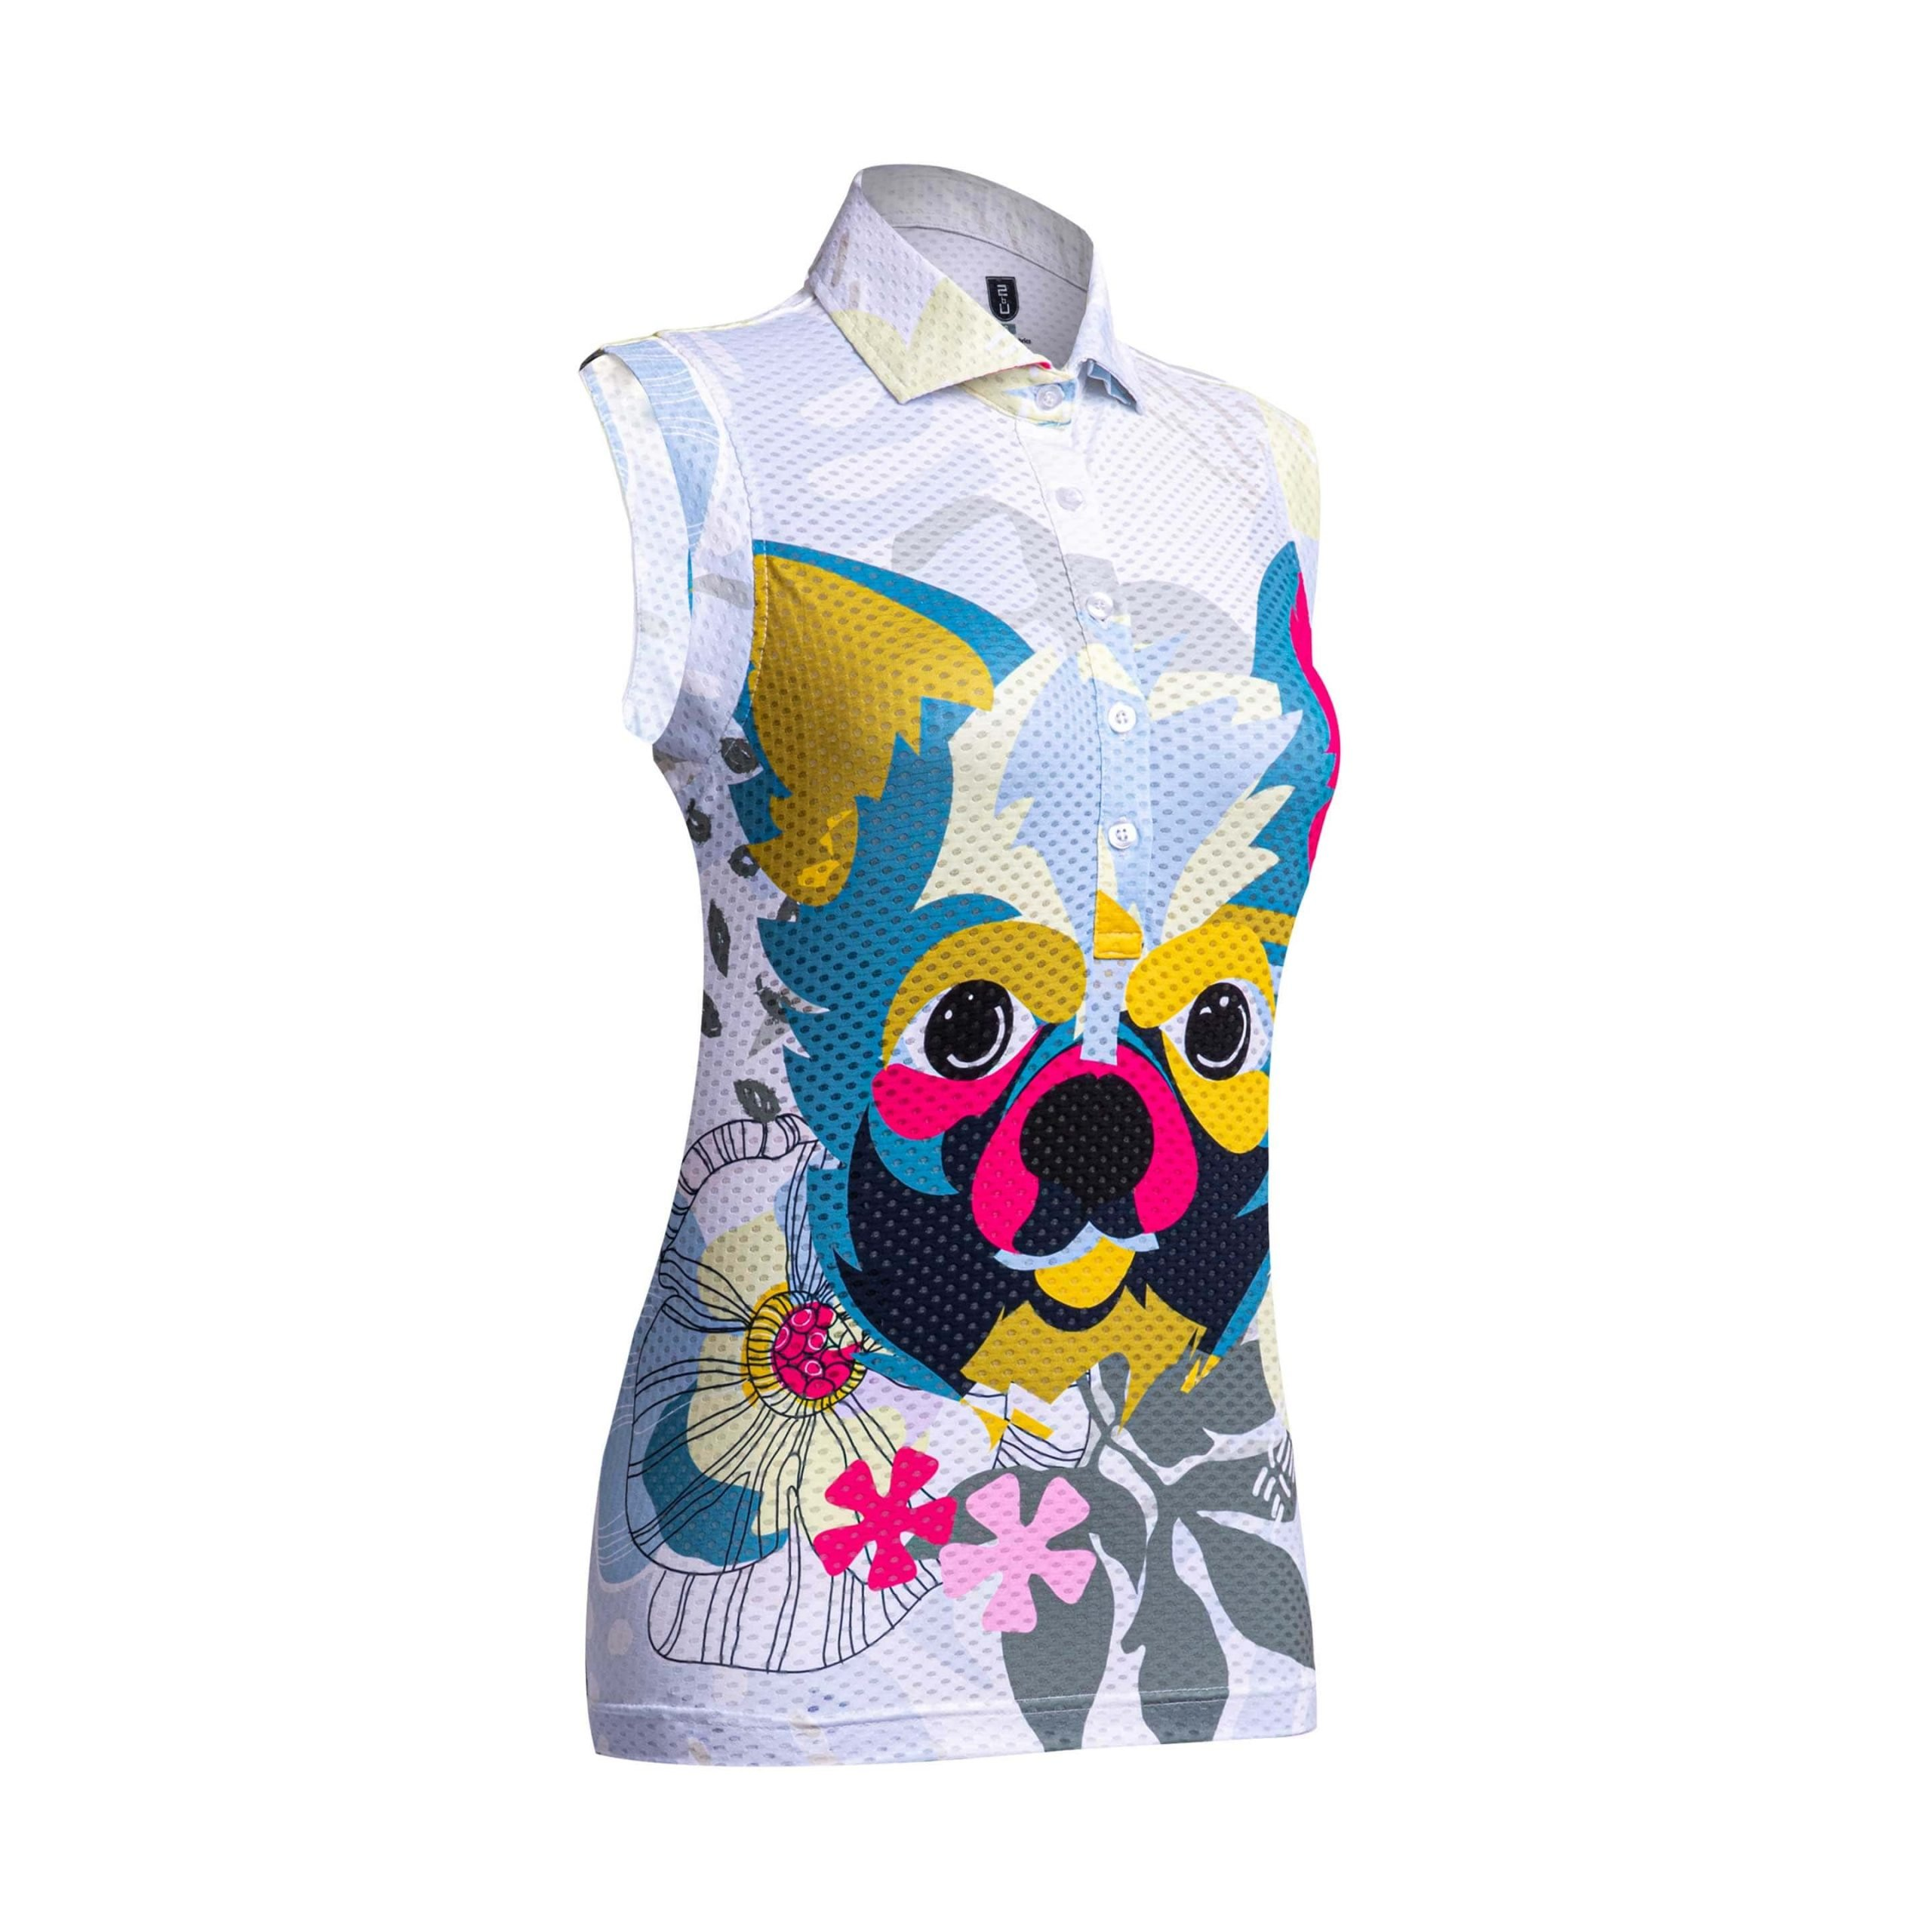 Golf Shirt – Chihuahua (Sleeveless)